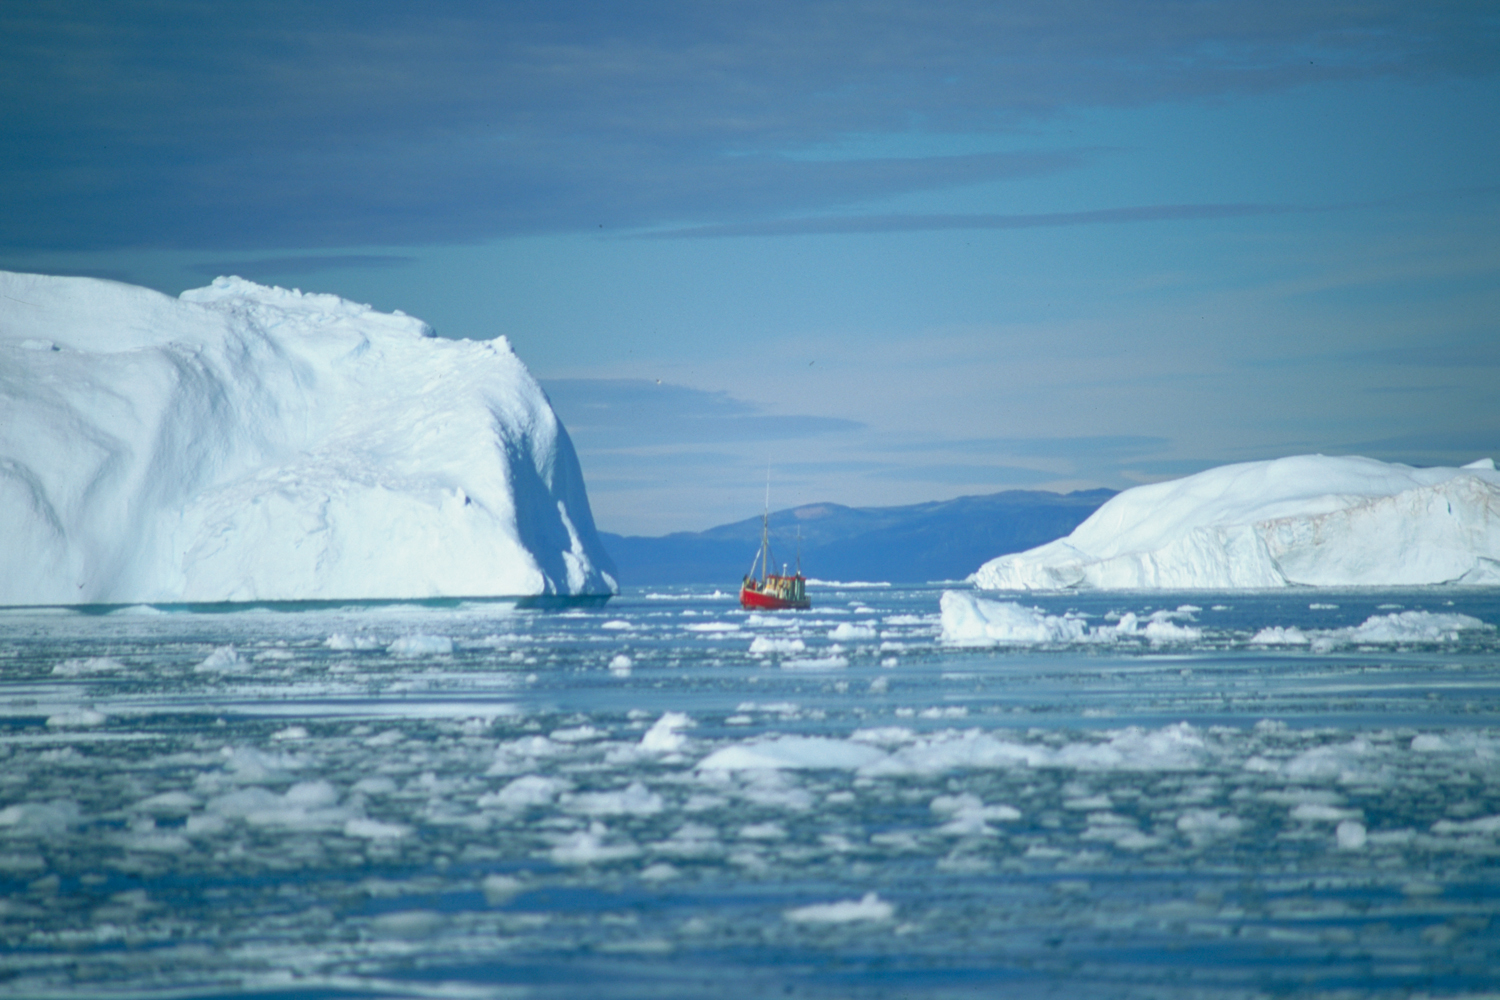 Greenland Bans All Future Oil Exploration, Says It's Serious About Climate Action